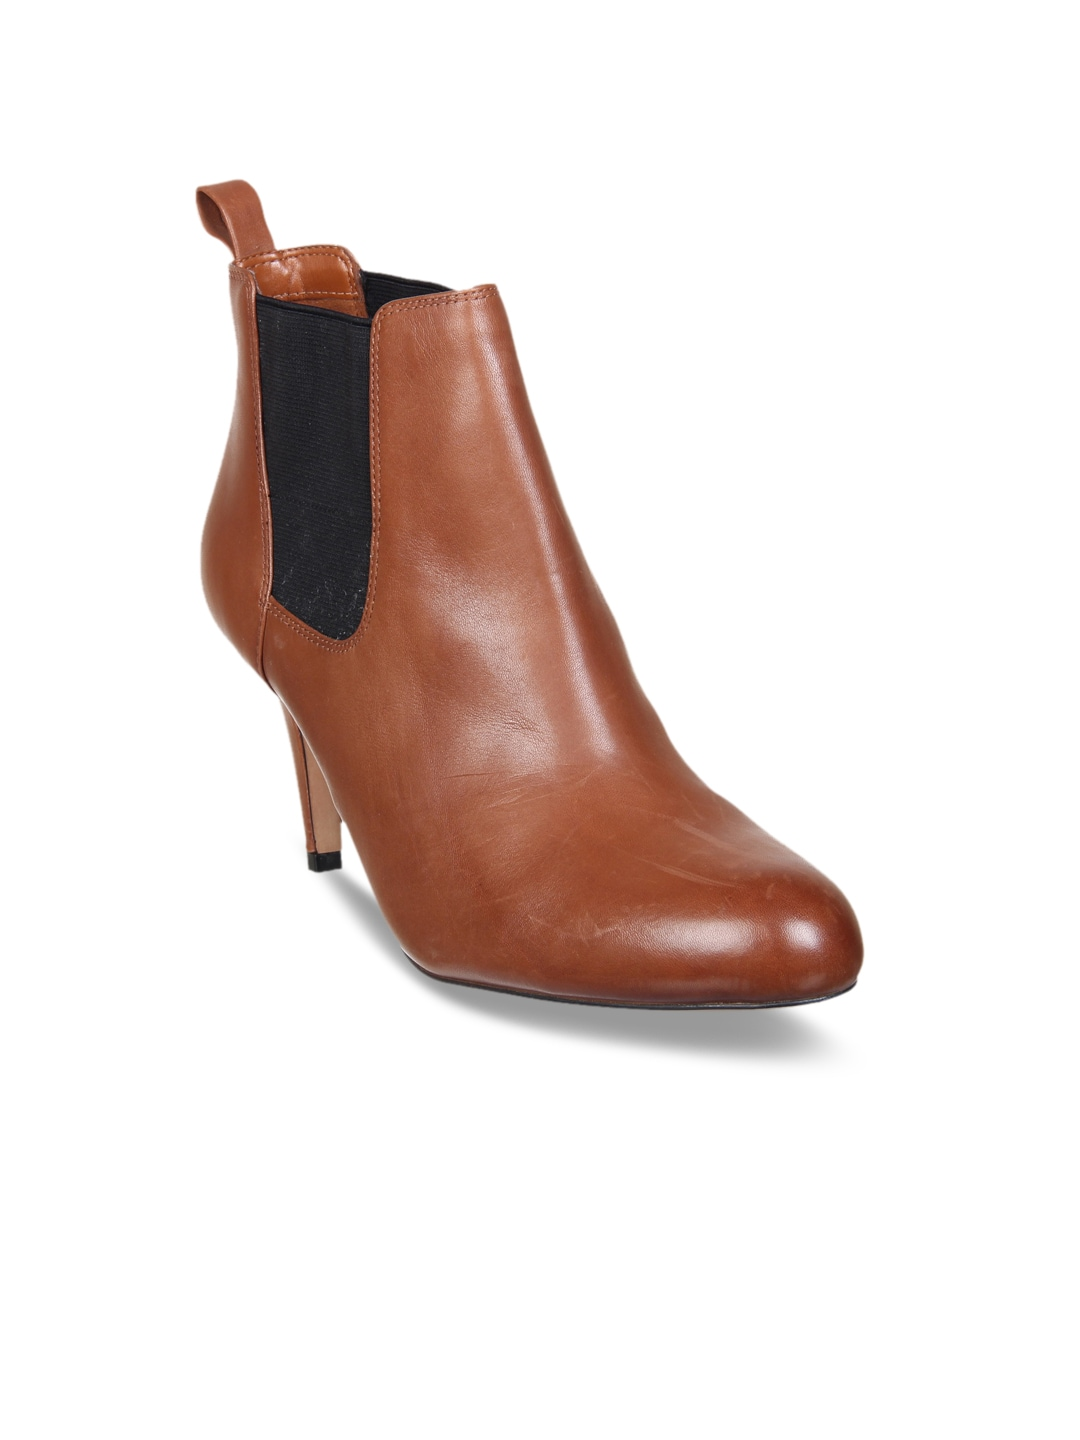 Clarks Women Tan Leather Mid Top Heeled Boots image